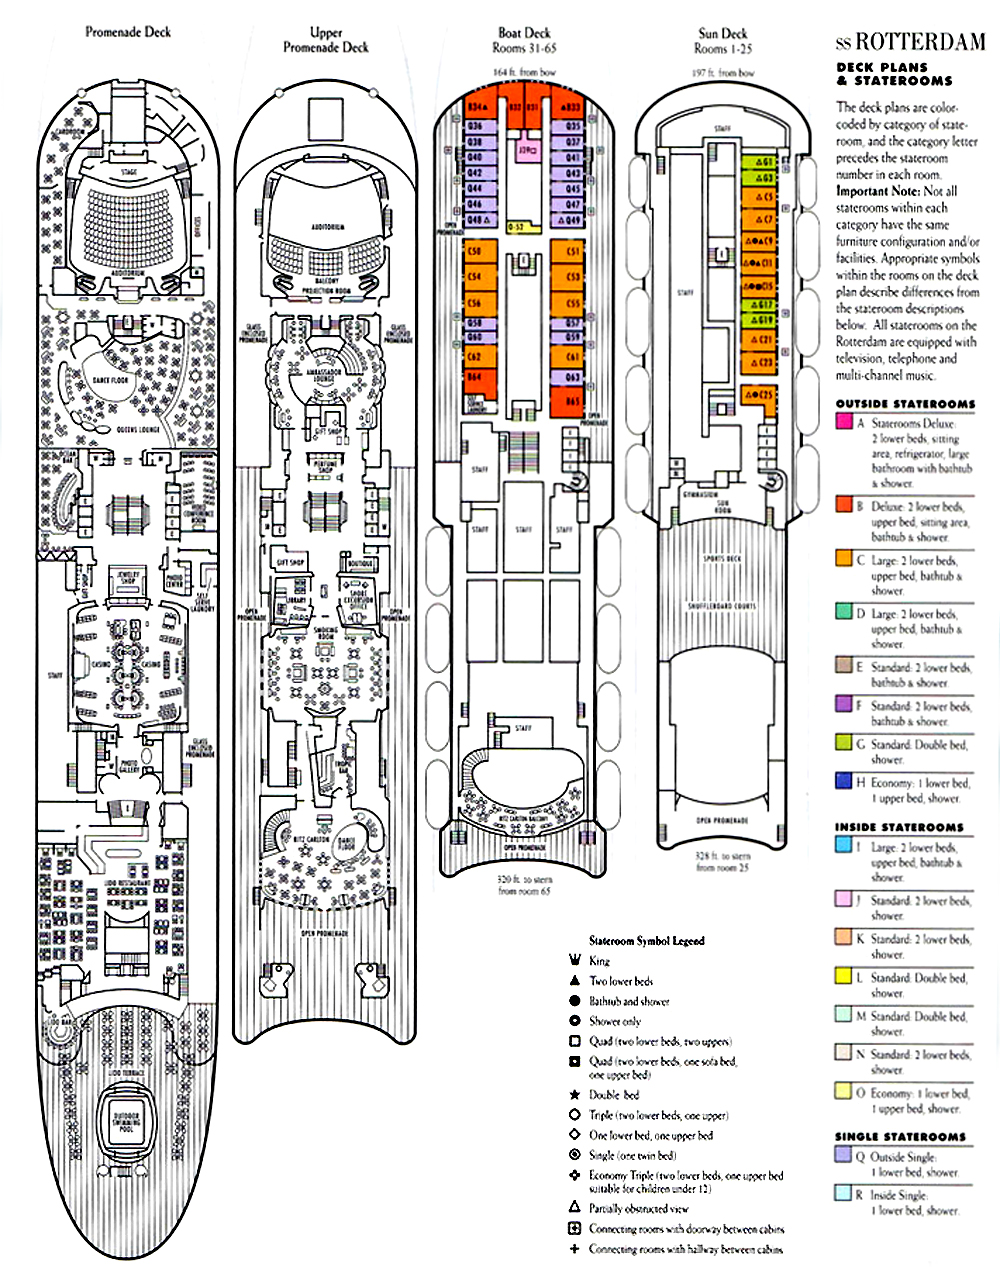 Ss rotterdam v part 6 deck plans other images for Deck plans online